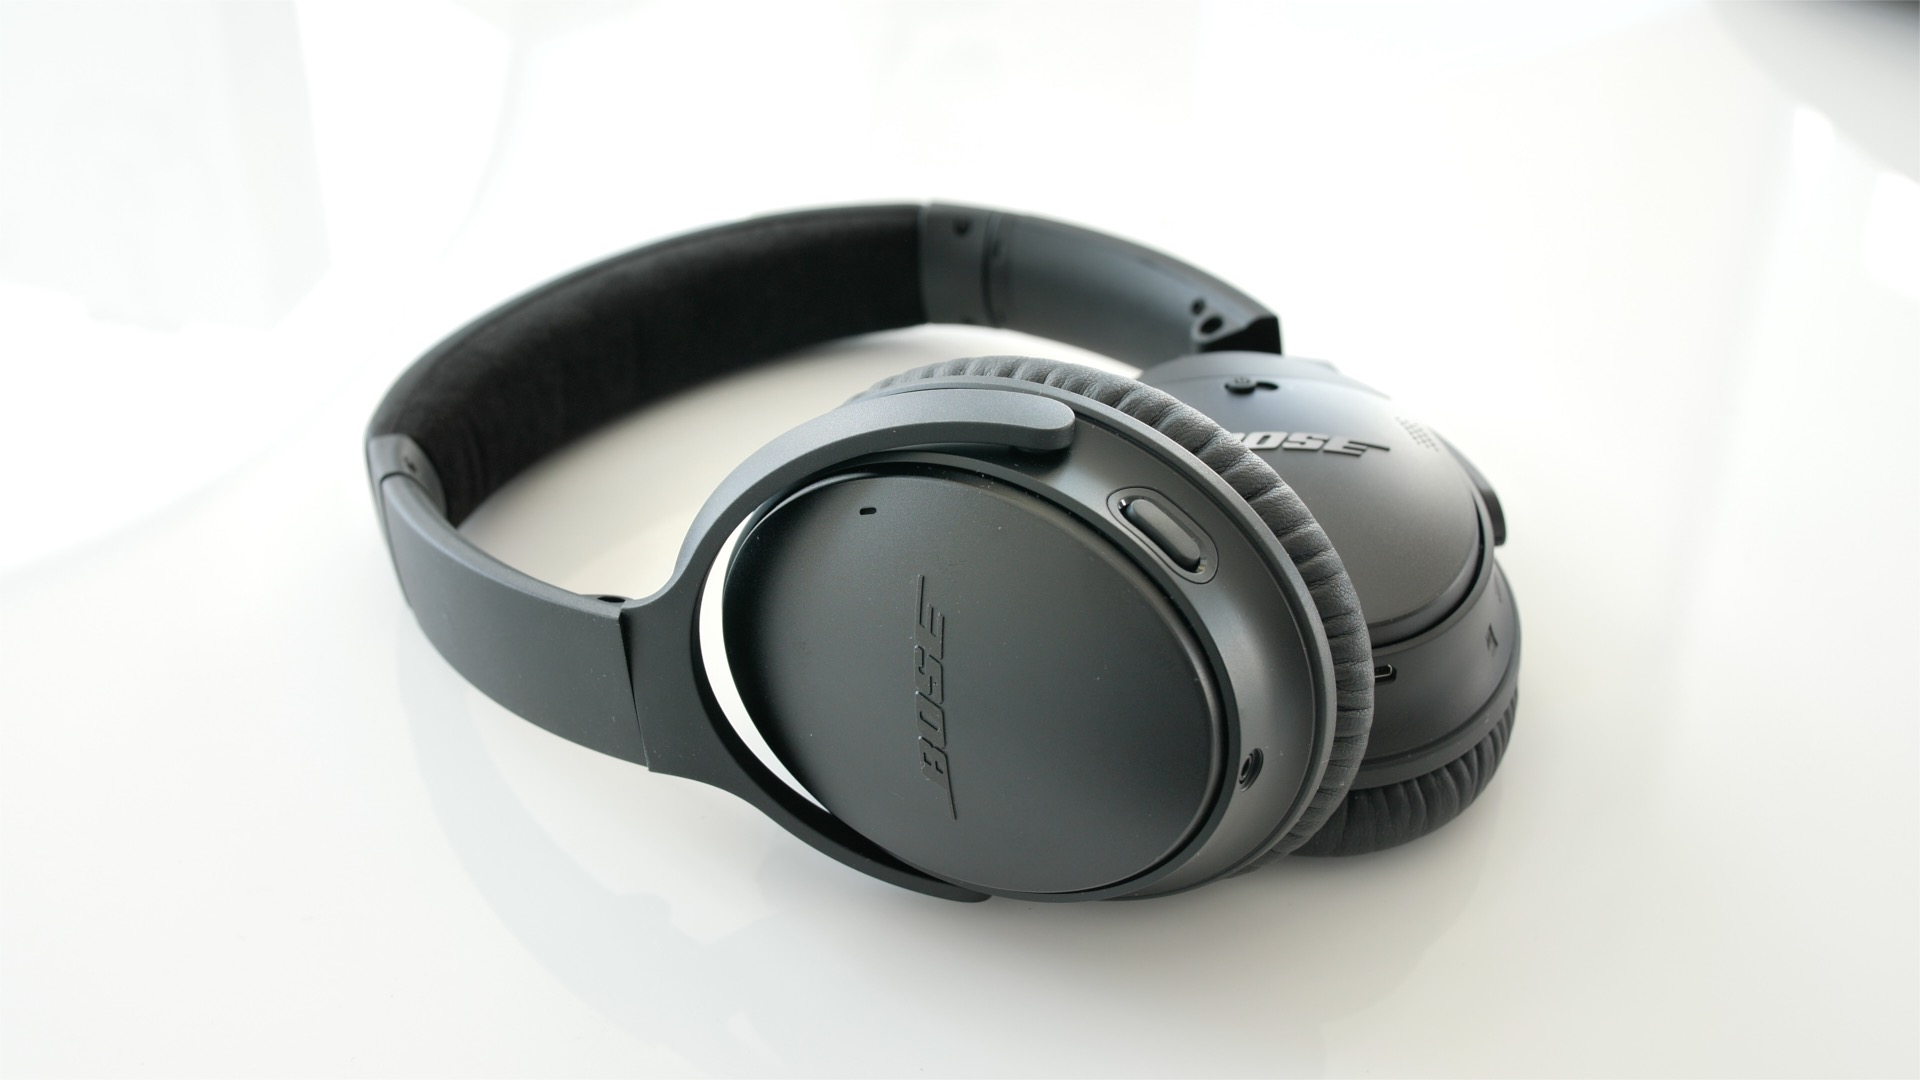 Bose Quietcomfort 35 Ii Review Best Buy Blog Qc25 Headphone For Samsung Devices Black